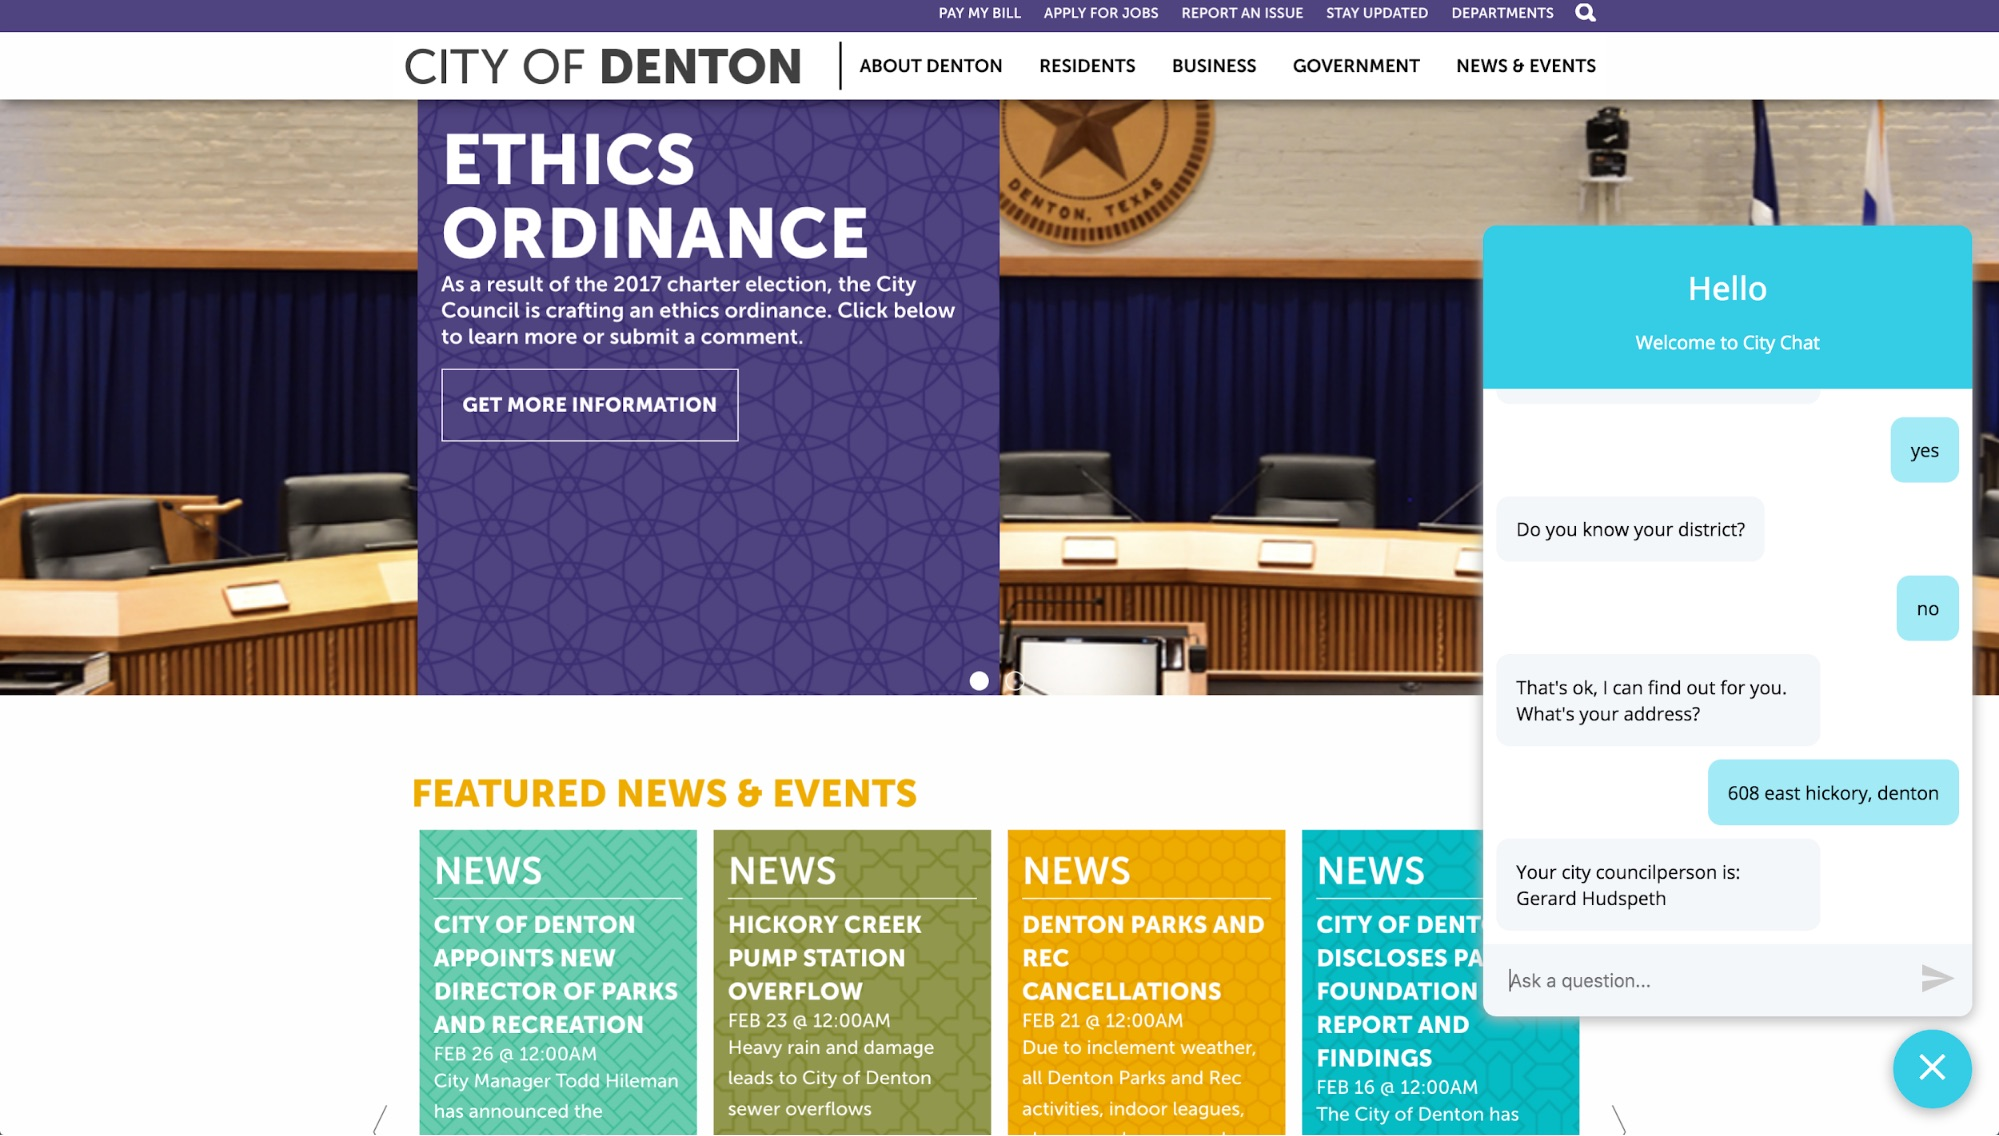 A screen capture of the chatbot demo on a City of Denton website.